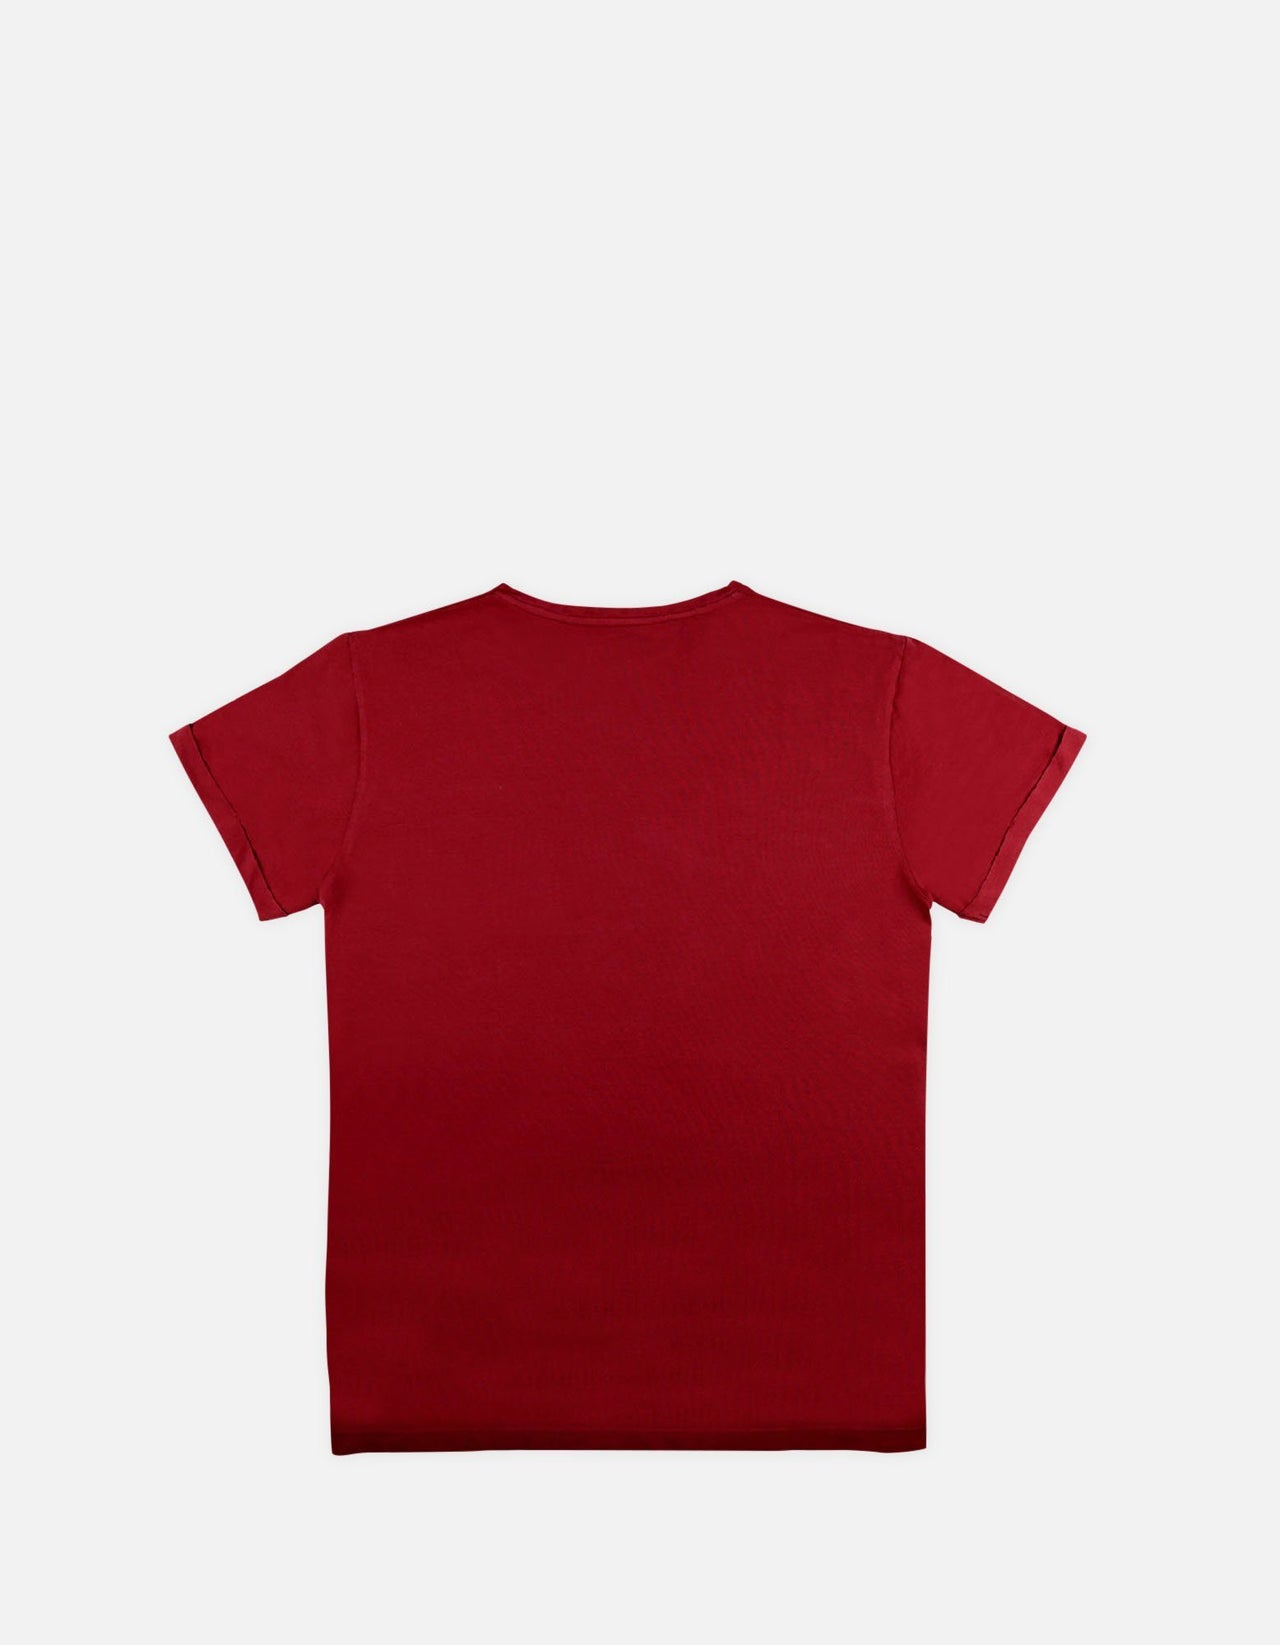 Jef RS - 06. Bordo Cotton T-Shirts - Jef RS MACKEENE